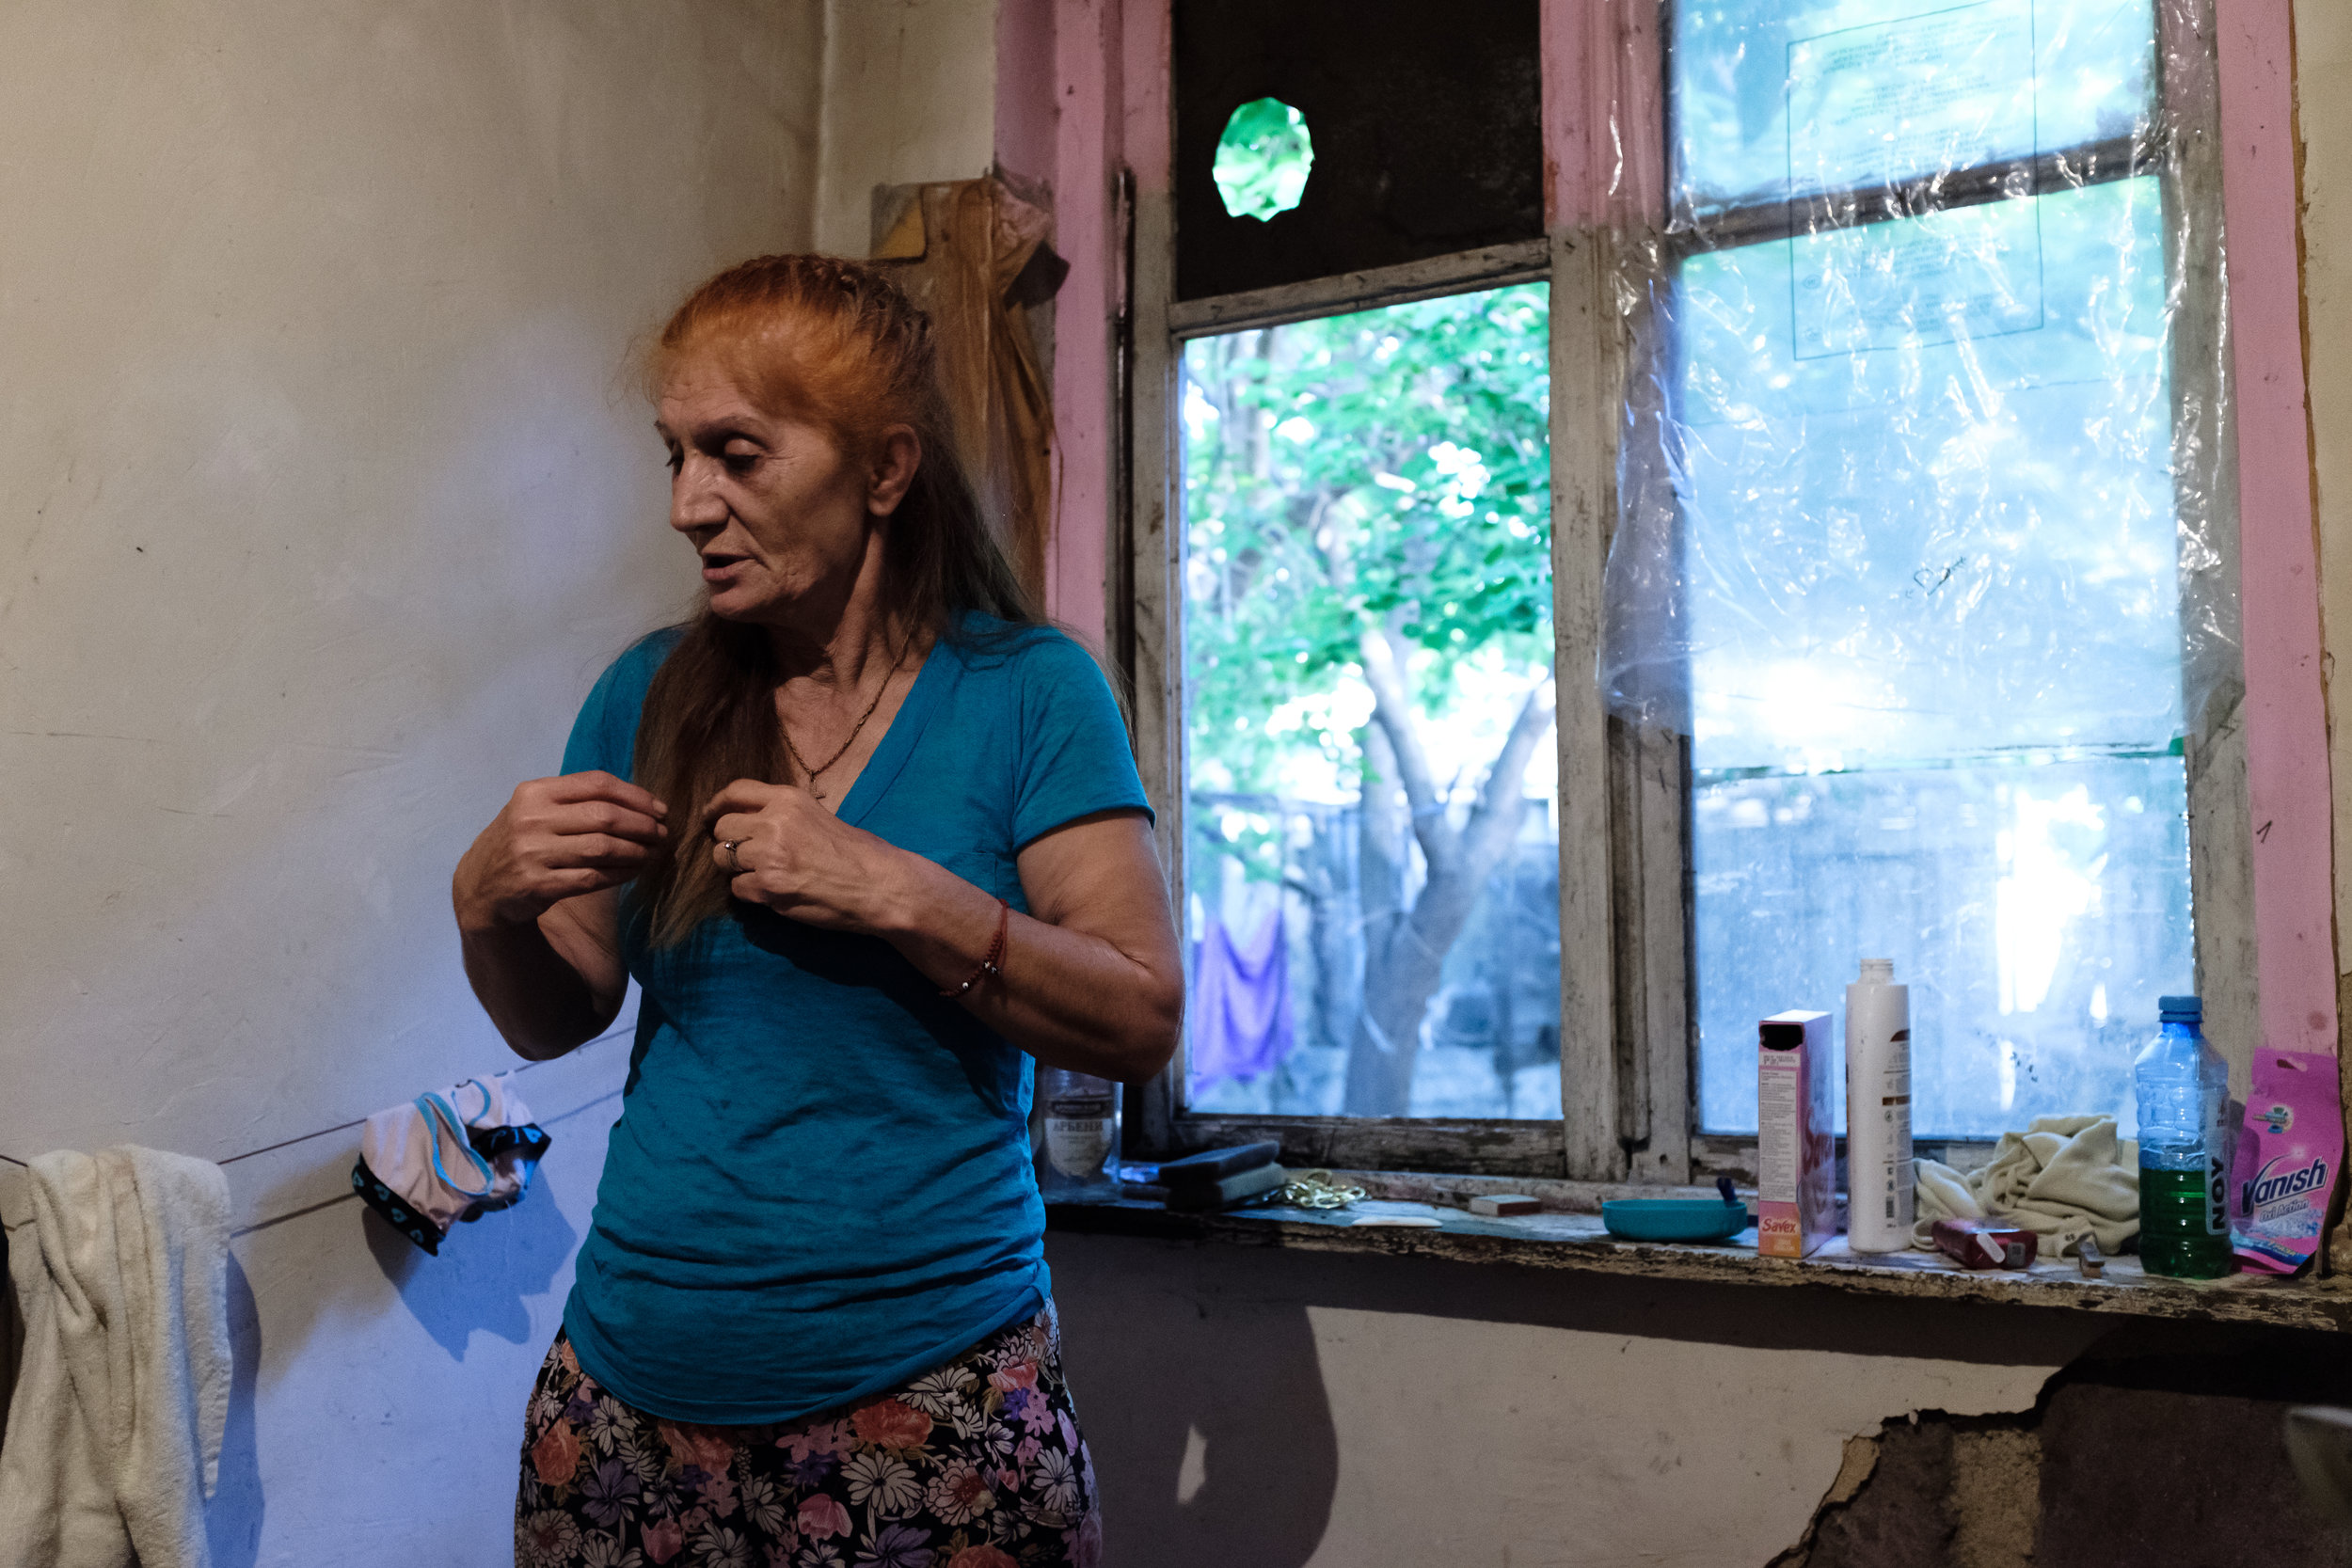 Anahit, 66 years old, used to live a comfortable life as an accountant before her husband died 25 years ago which placed her literally on the edge of poverty. She is both a mother and a grandmother and has difficulty finding any kind of job that can pay the bills.